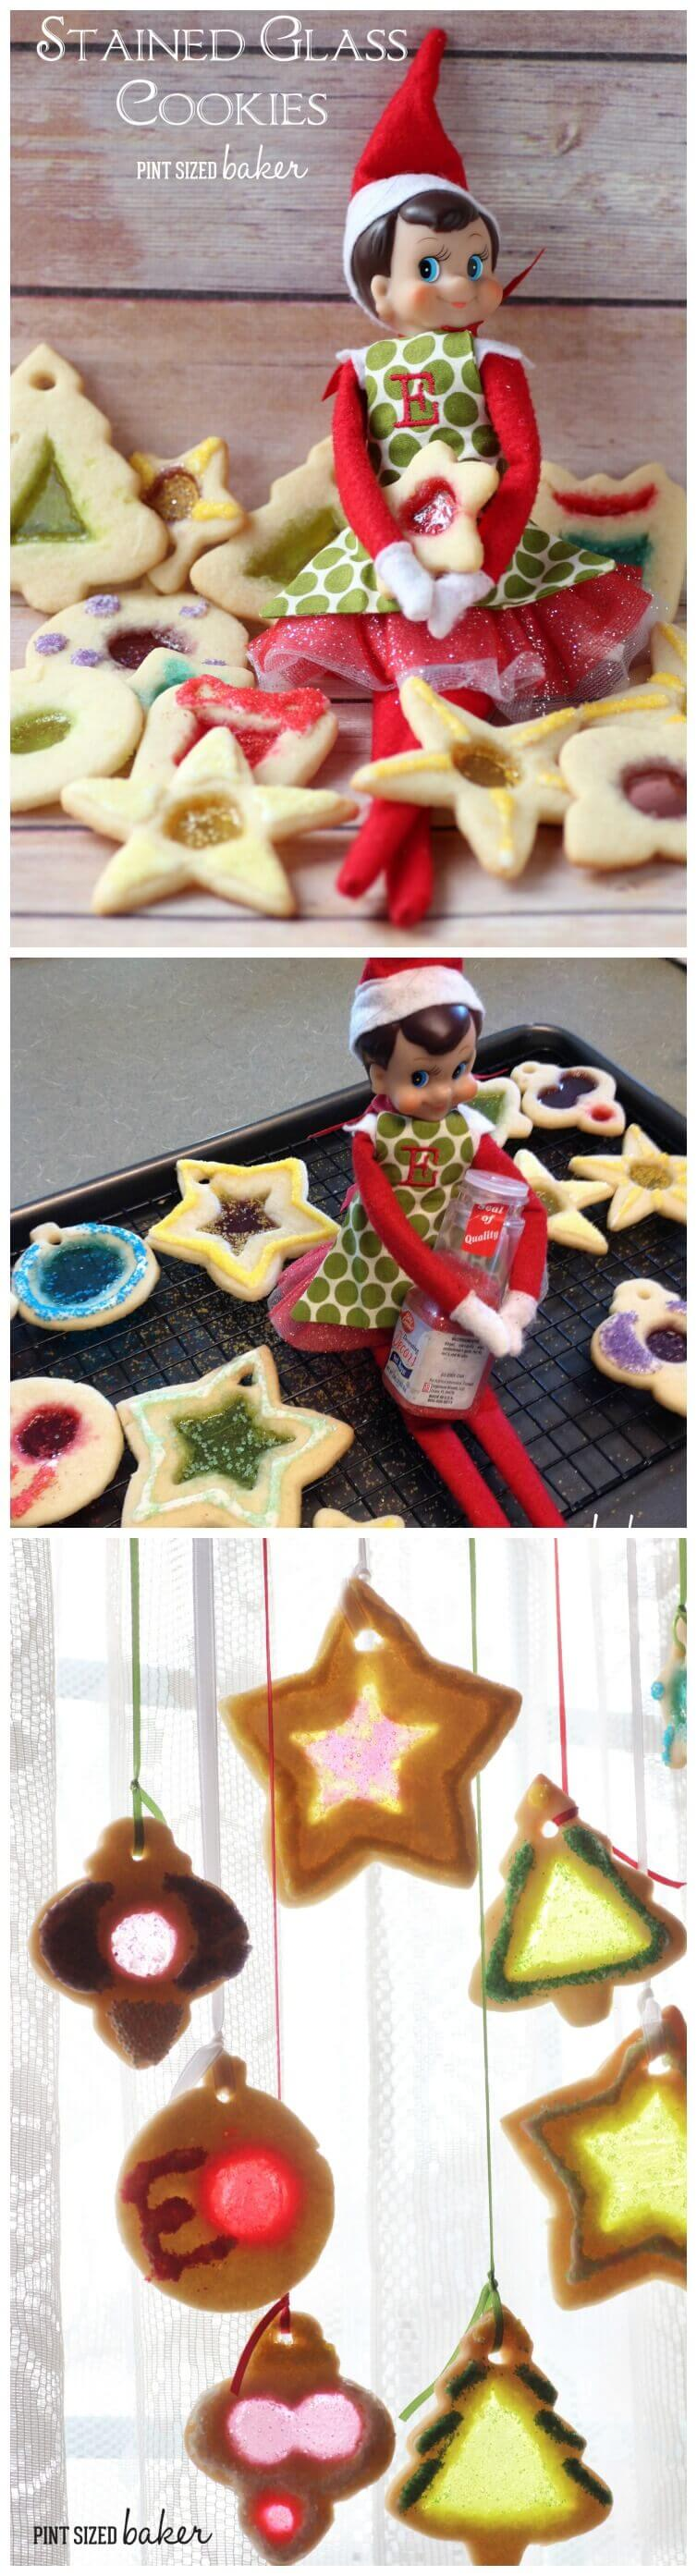 Stunning Stained Glass Christmas Cookies baked with our family Elf on the Shelf! Bake the cookies and hang them in window to show off all the colors.